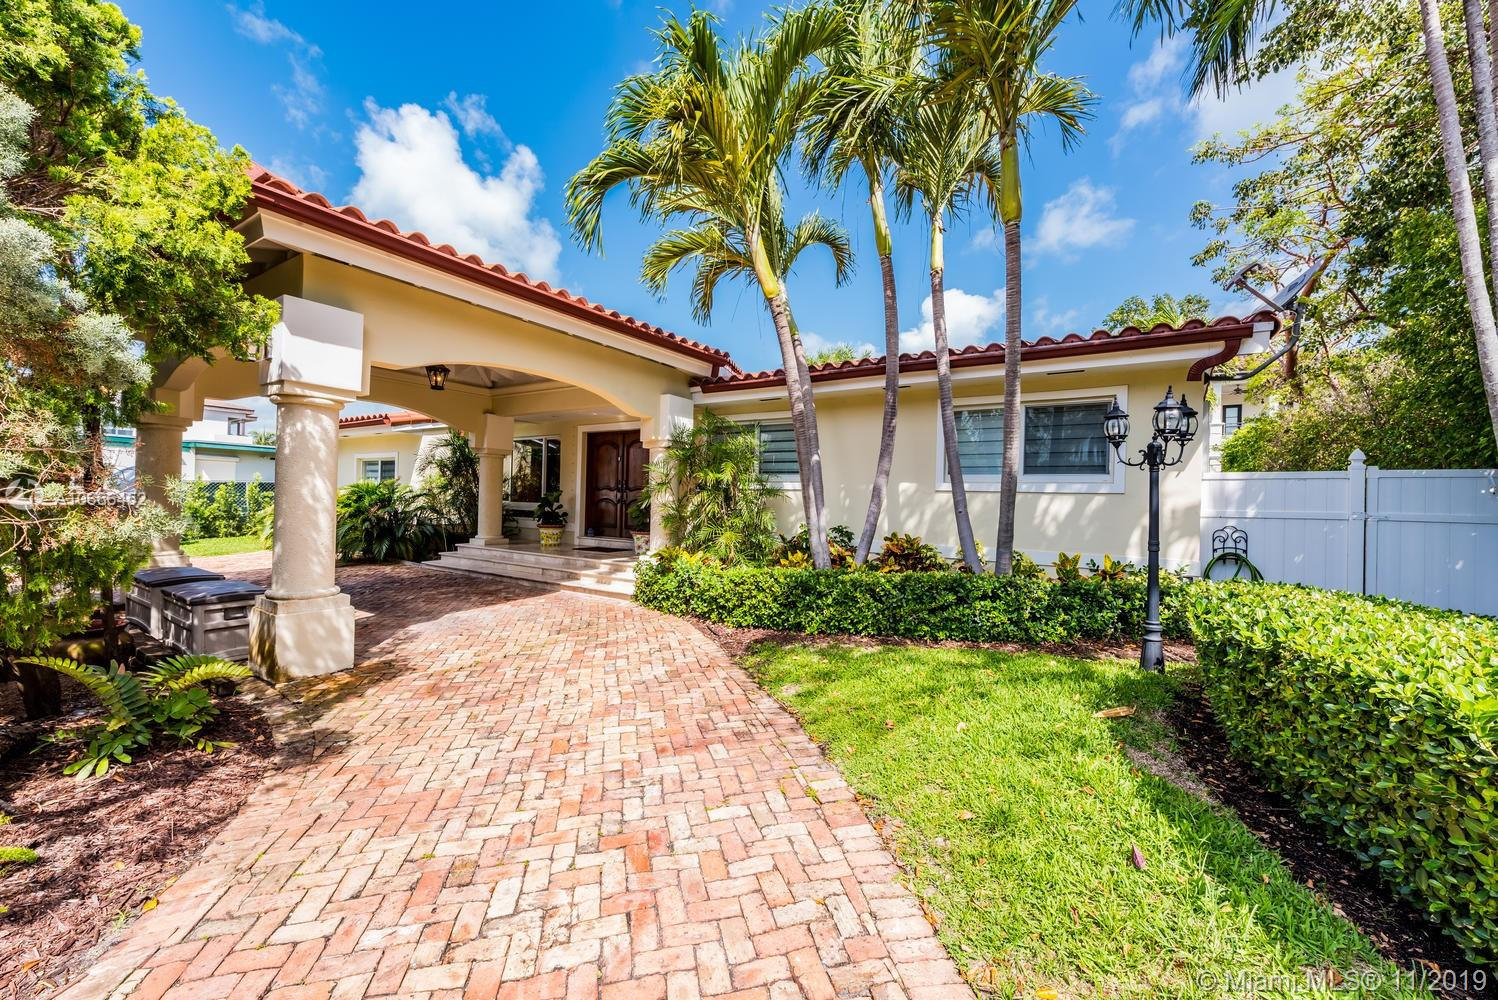 One of Key Biscayne 4 Bedroom Homes for Sale at 217 Buttonwood Dr